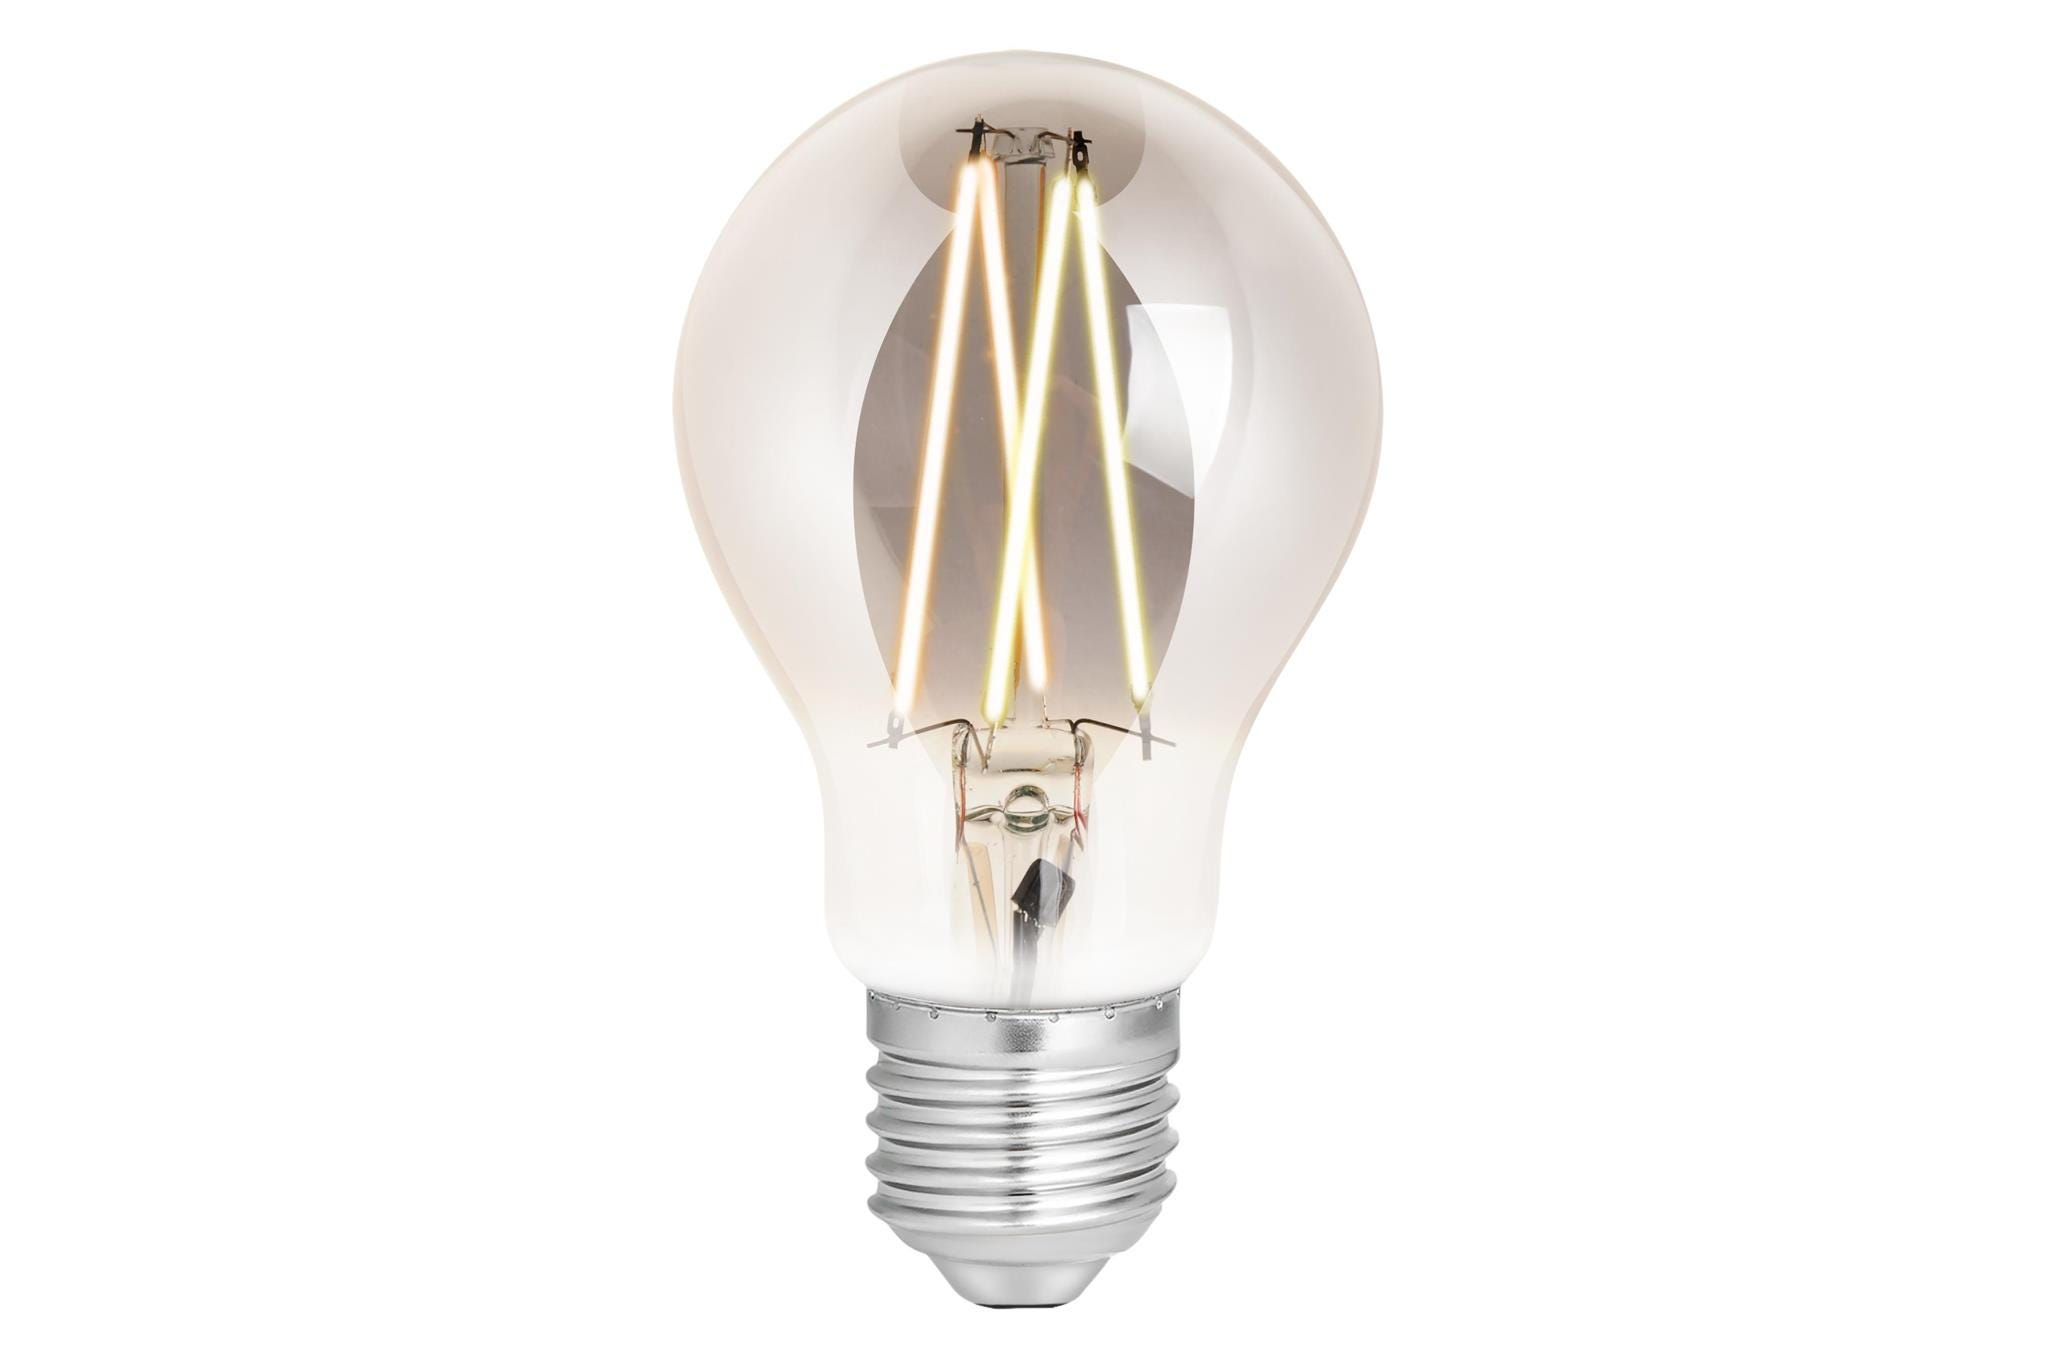 4lite WiZ Connected A60 Edison Filament LED Smart Bulb Smoky White Dimmable WiFi  - E27 Screw